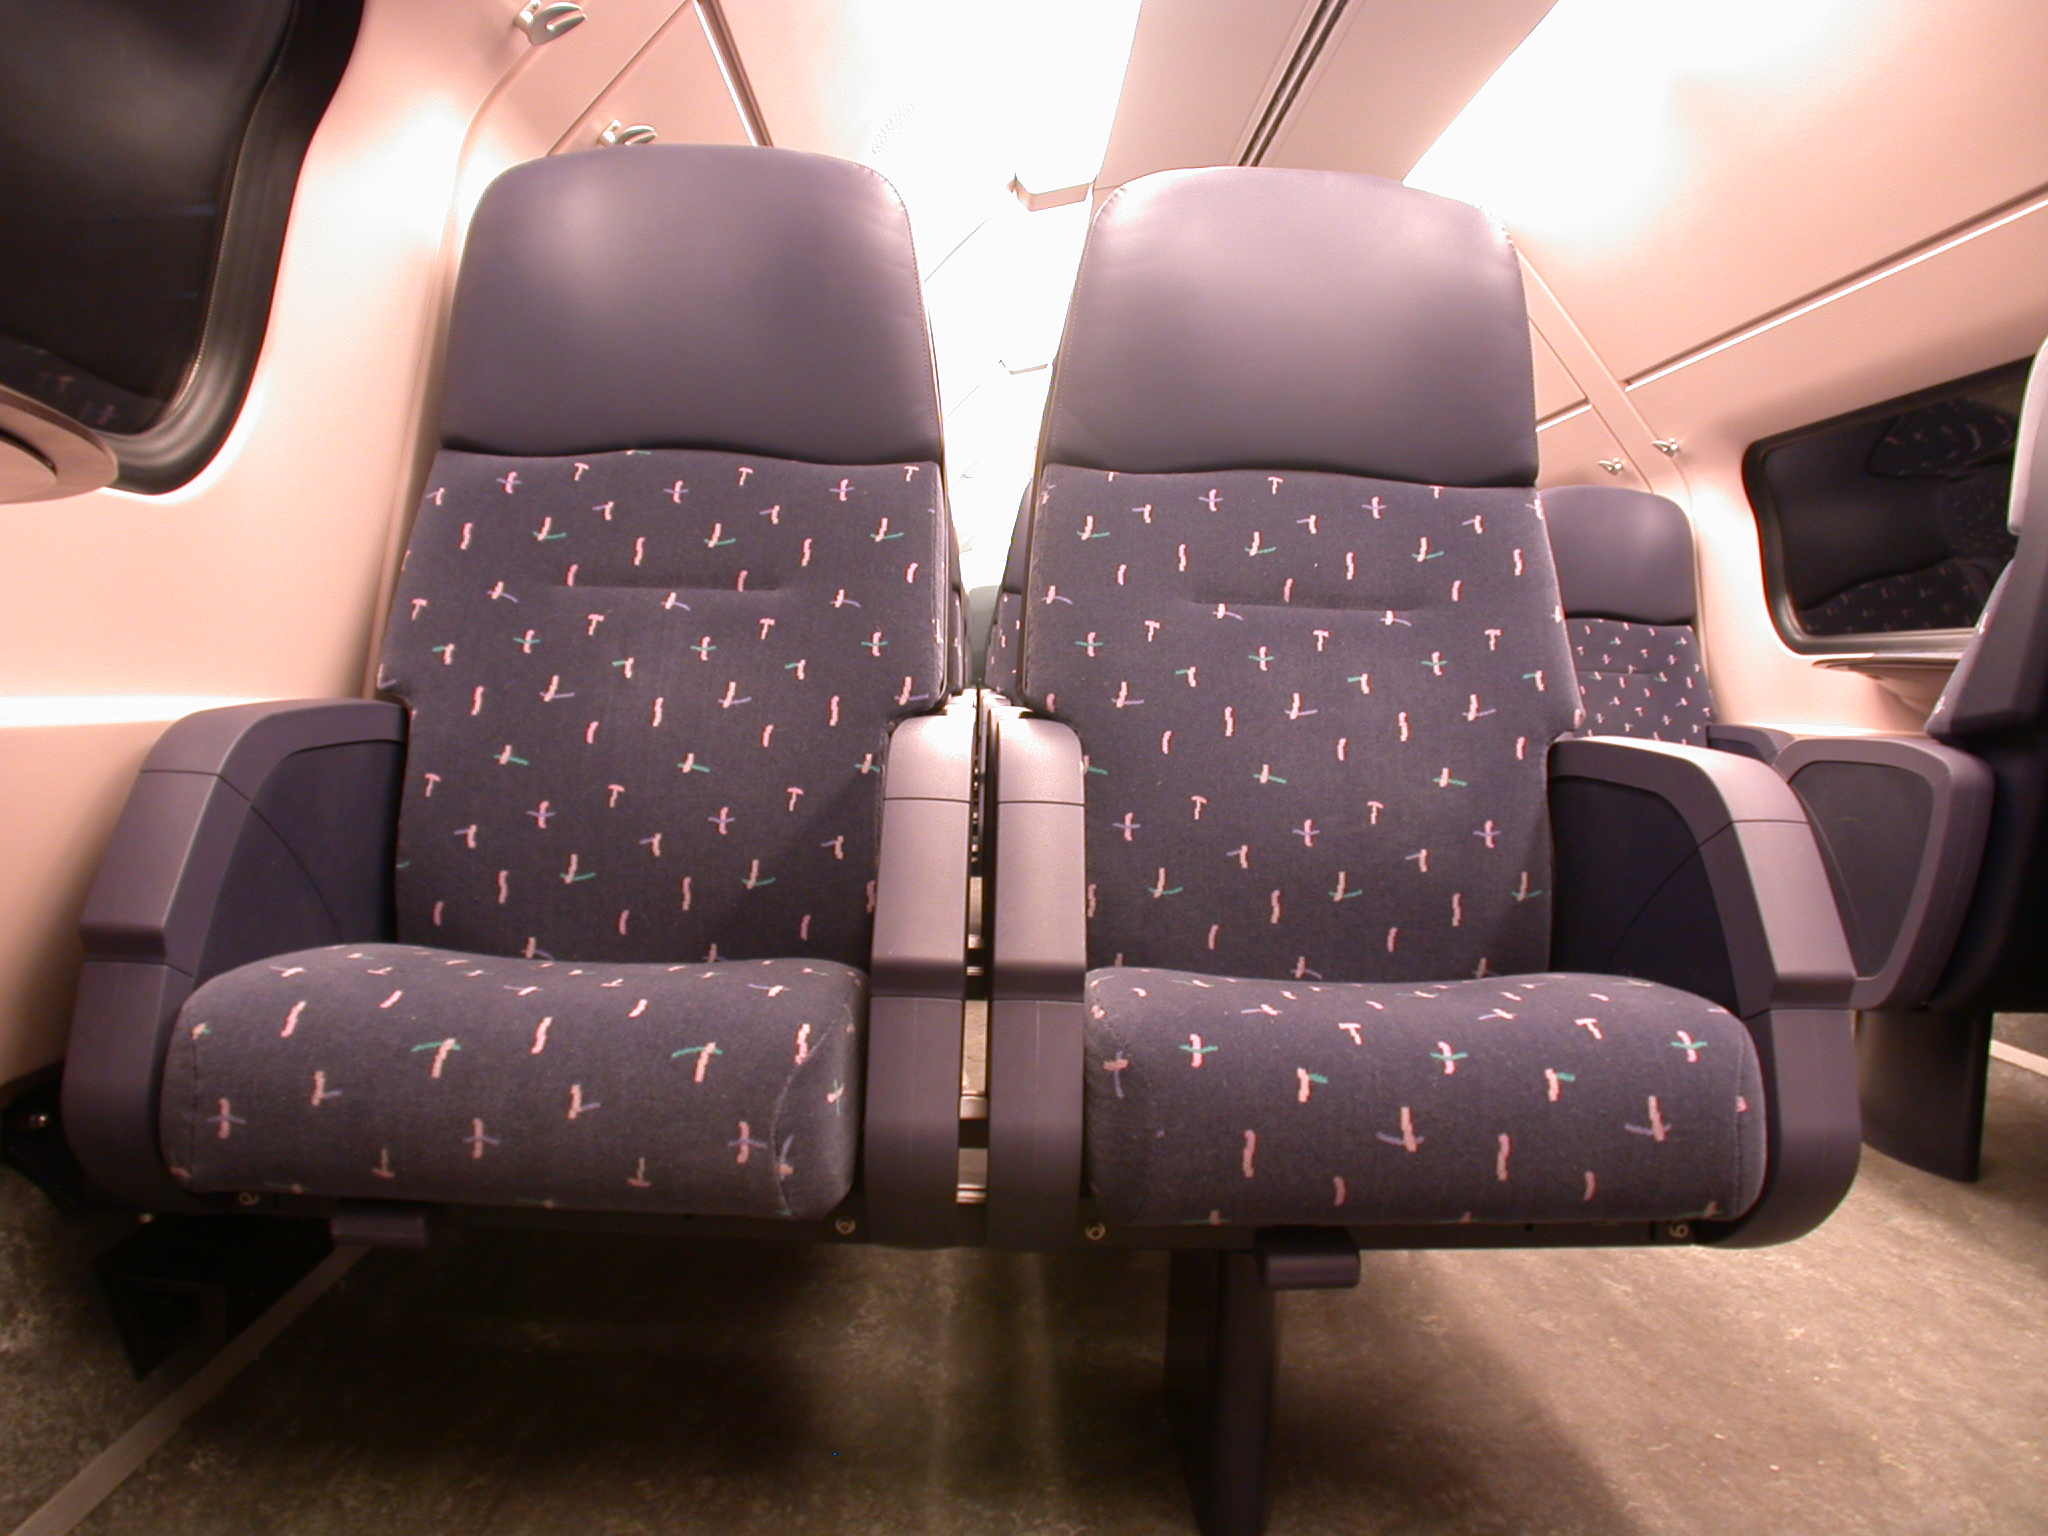 architecture interiors train firstclass class seat seats chair chairs ns publictransport transport empty